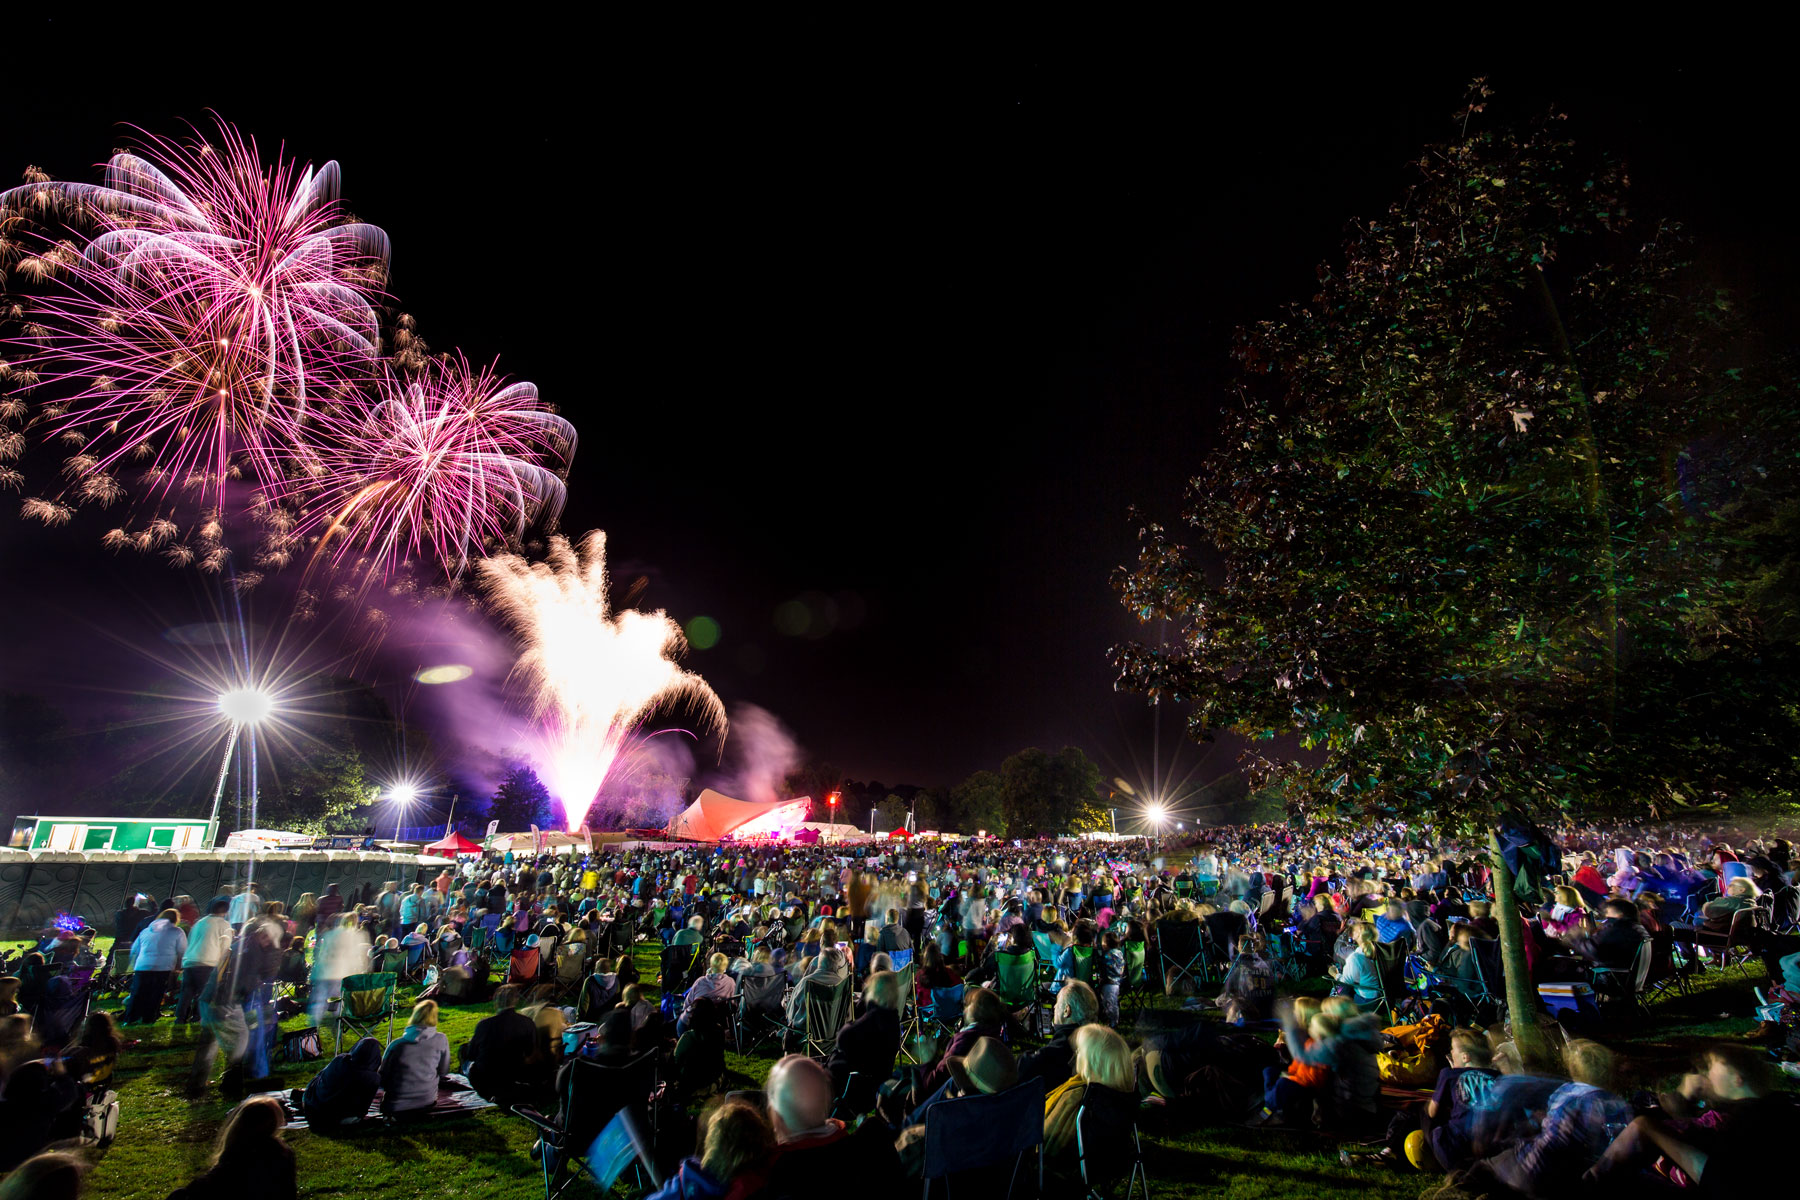 Purple fireworks over the satge at Proms in the Park, Derby 2015